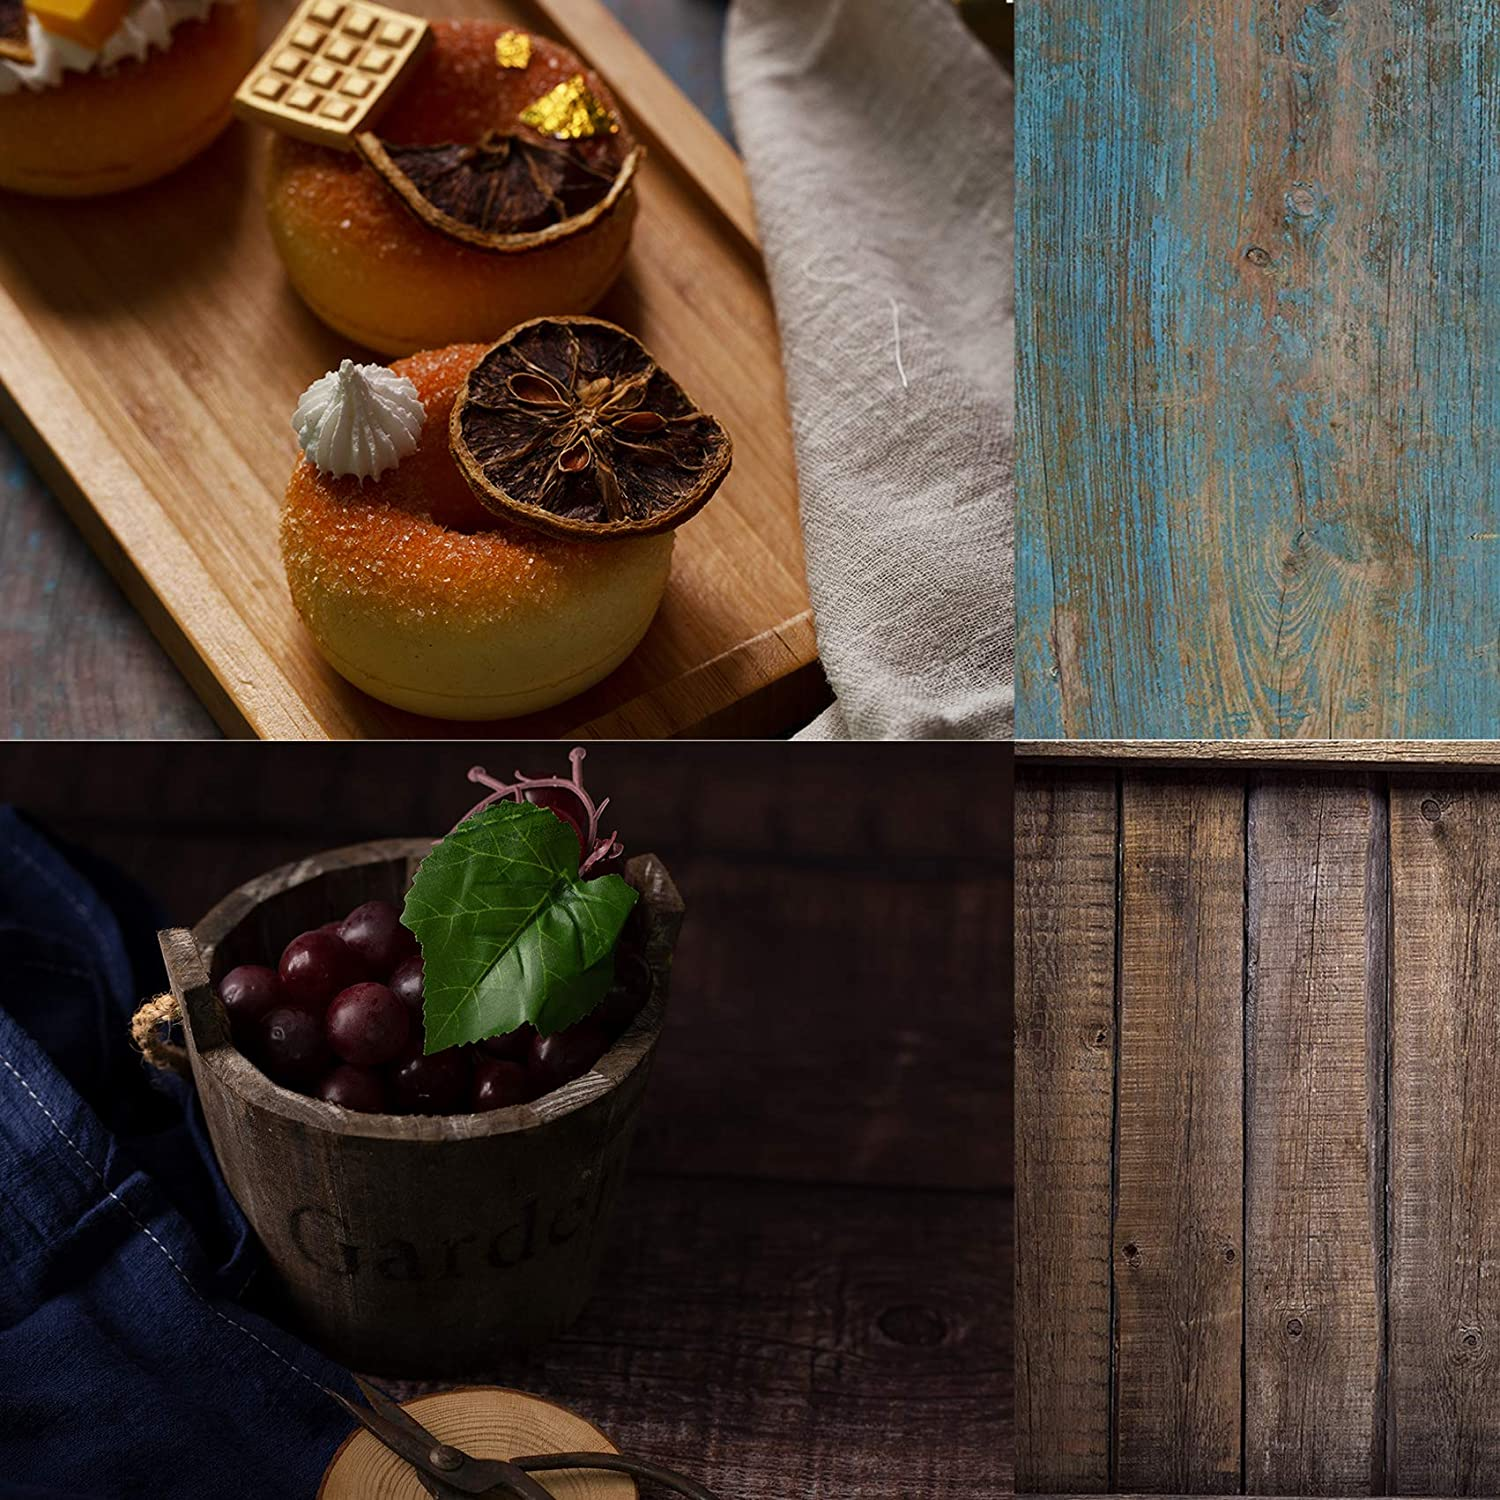 Selens 2x3ft/60x90cm Blue Wood Photography Backdrop Paper 2 in 1Flat Lay Backdrops Food Photography Background Tabletop Backdrop Props for Jewelry Makeup Small Product Desktop Backdrop